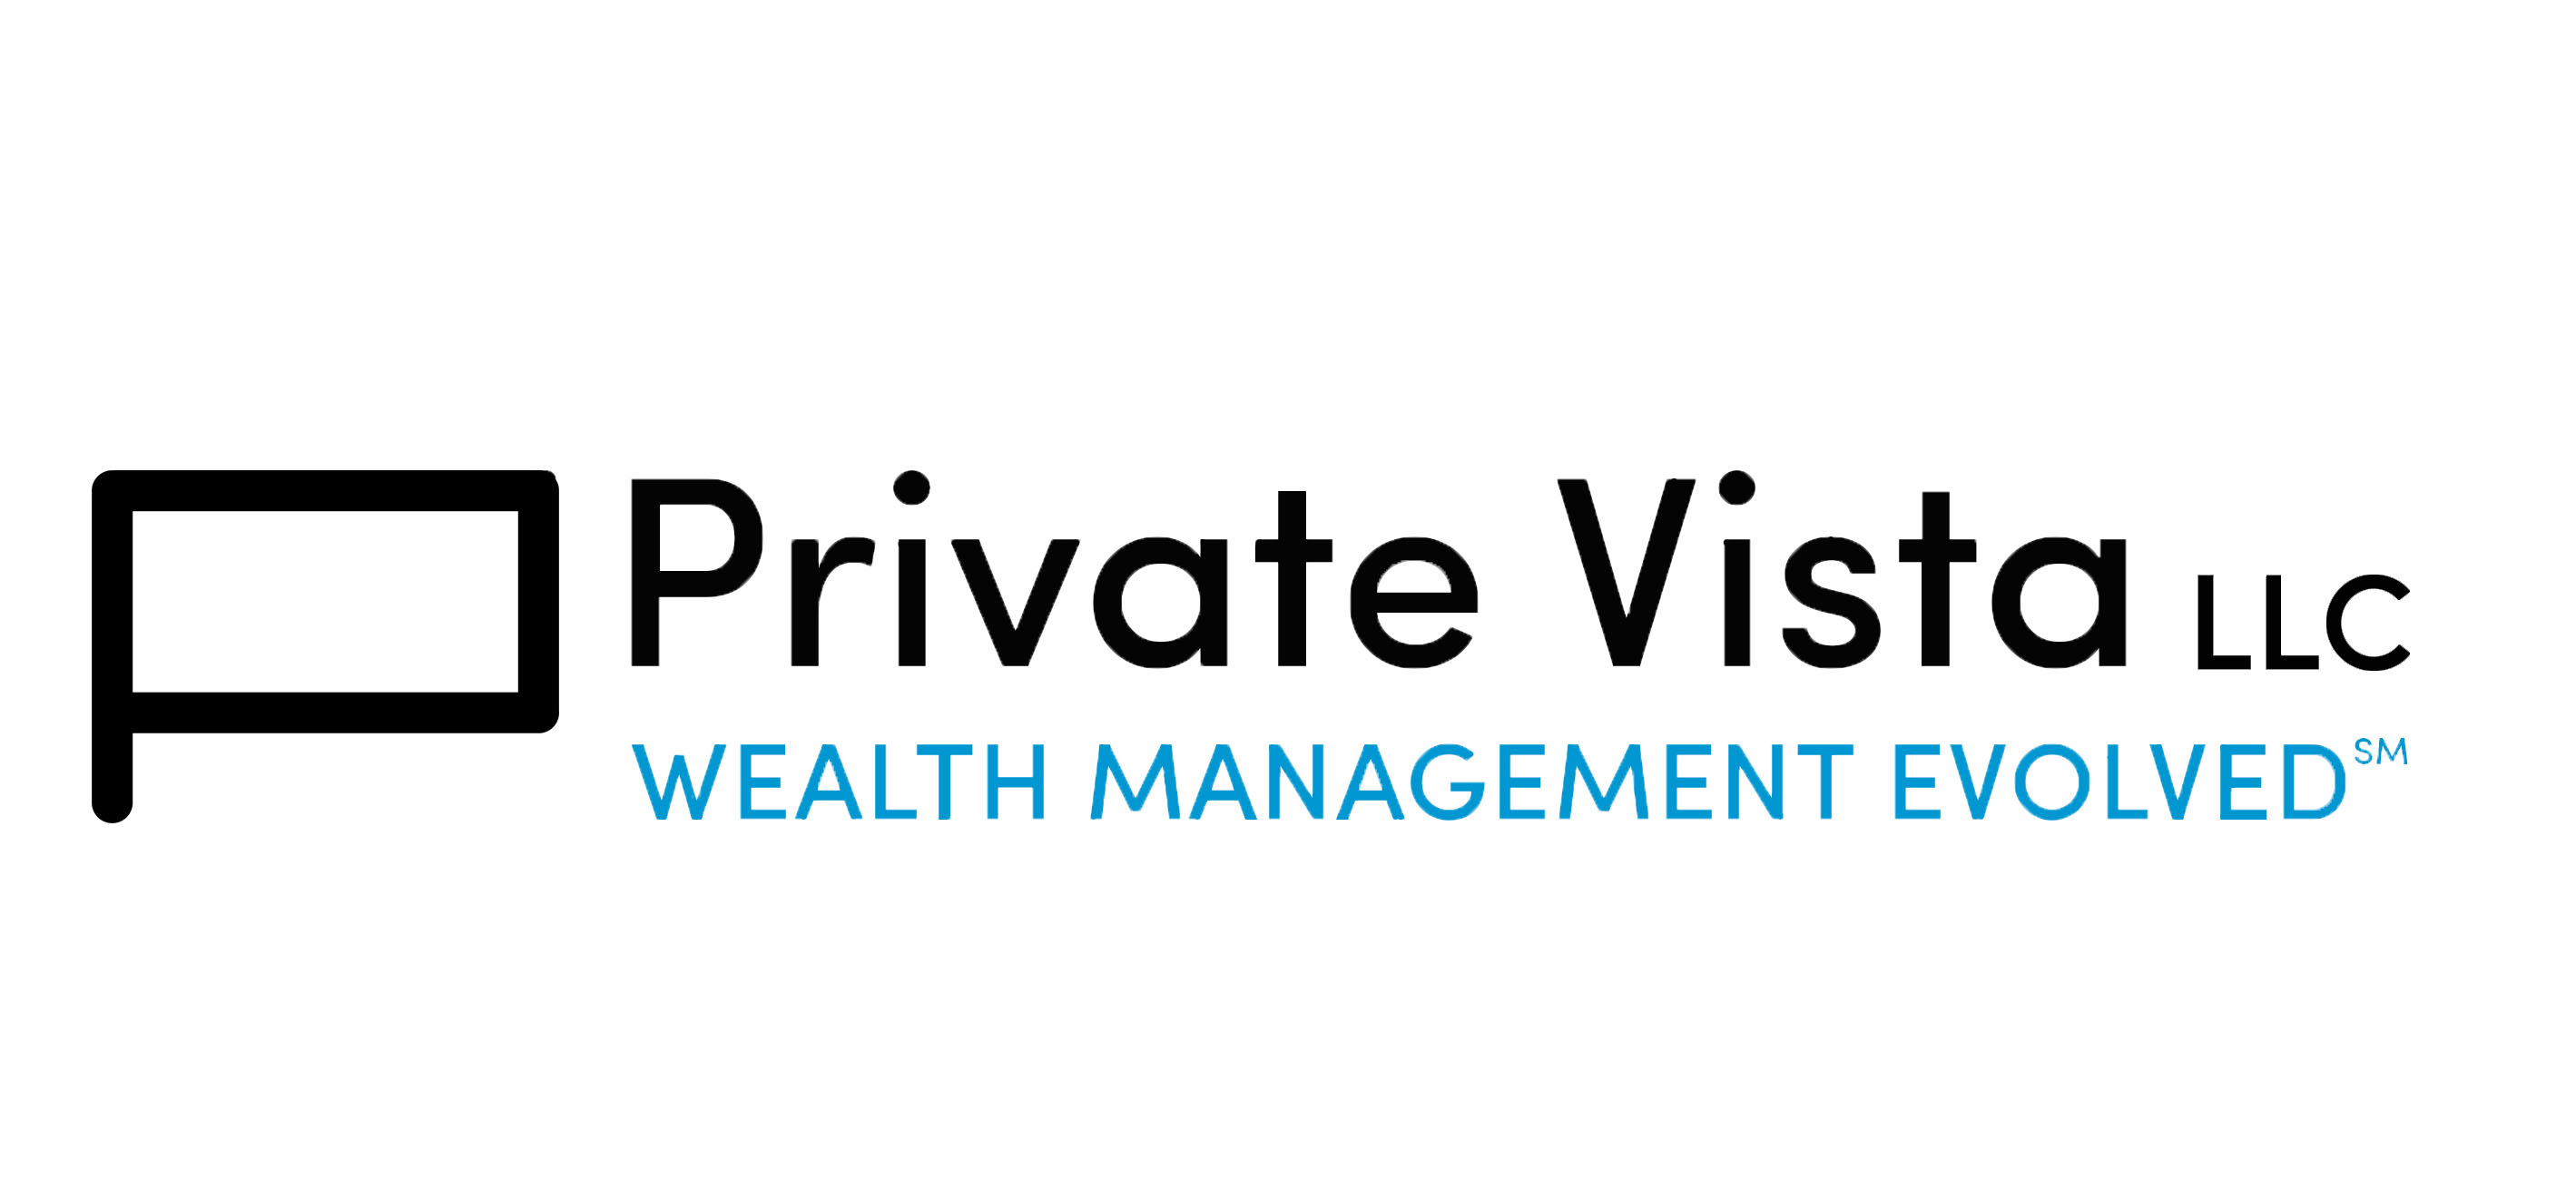 Private Vista LLC and tagline blue logo